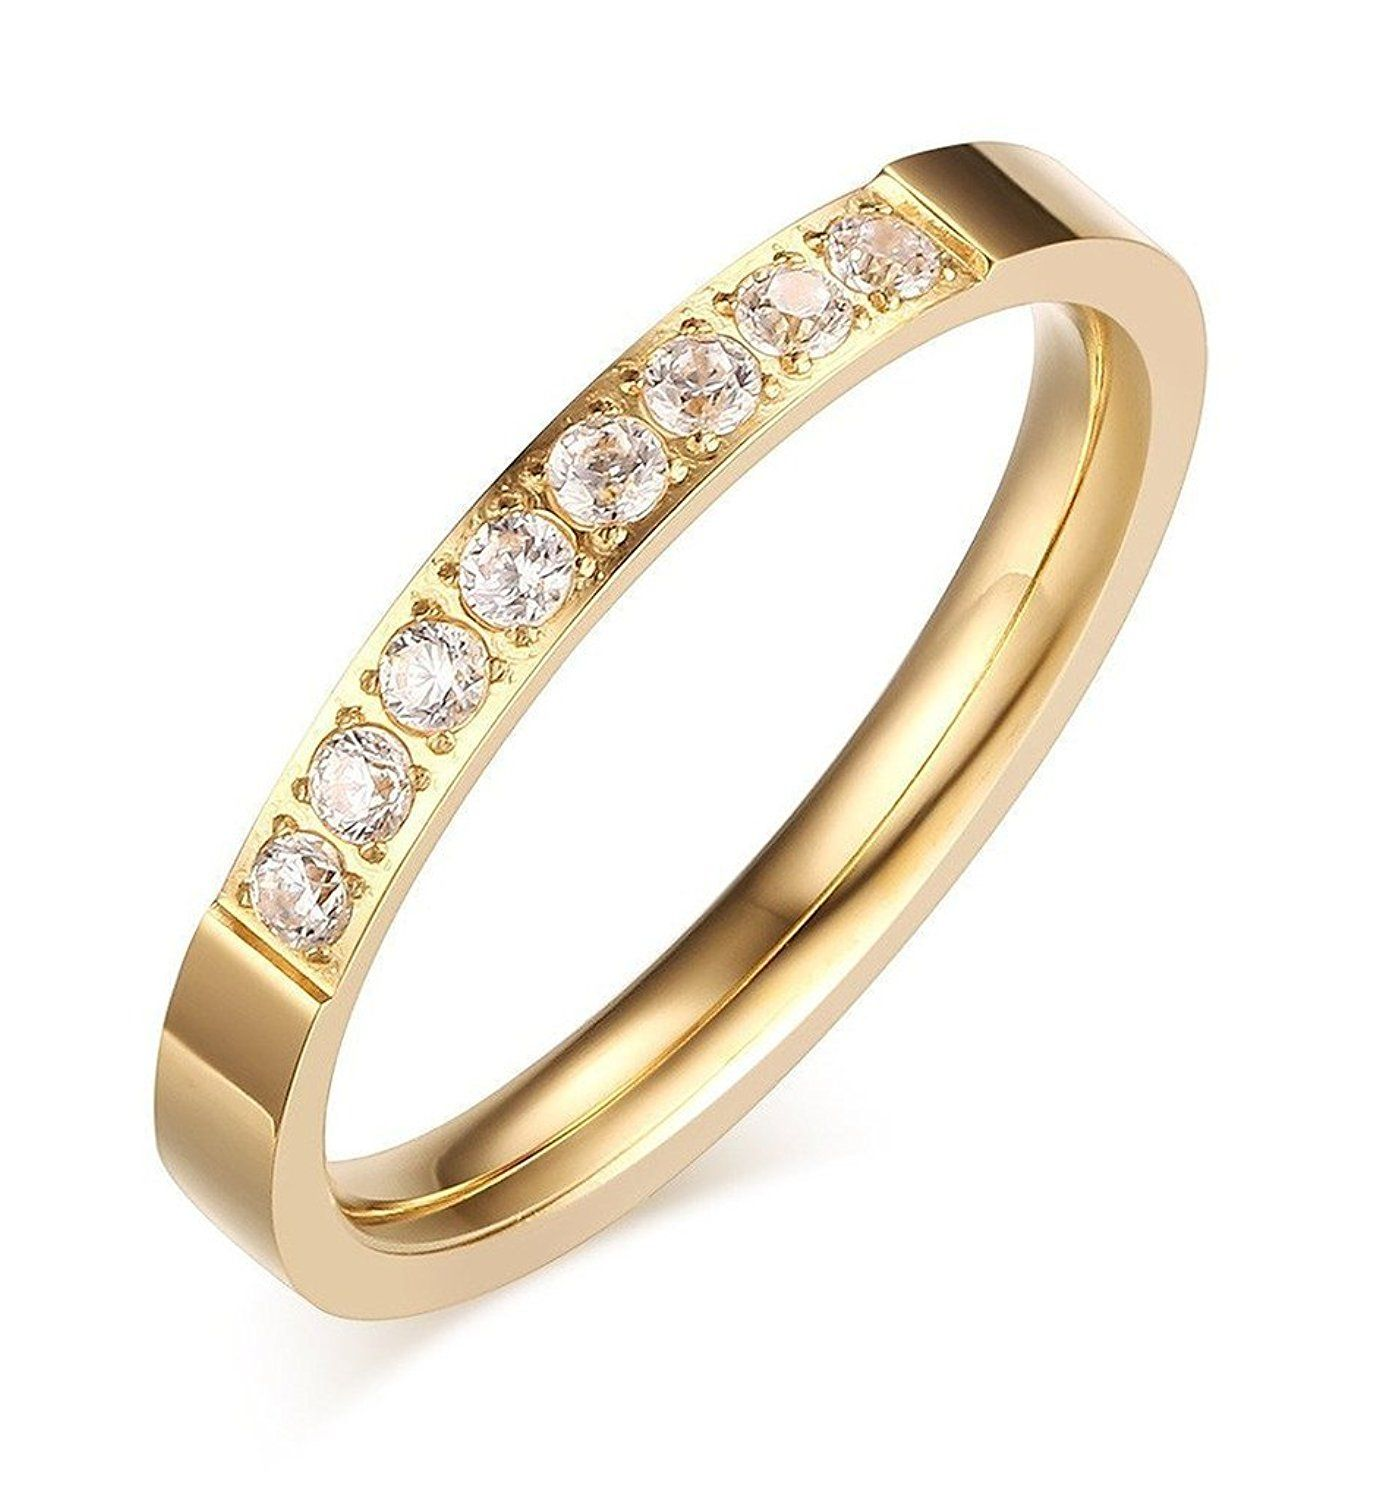 Women's 3MM 18K Gold Plated Stainless Steel Thin Prong